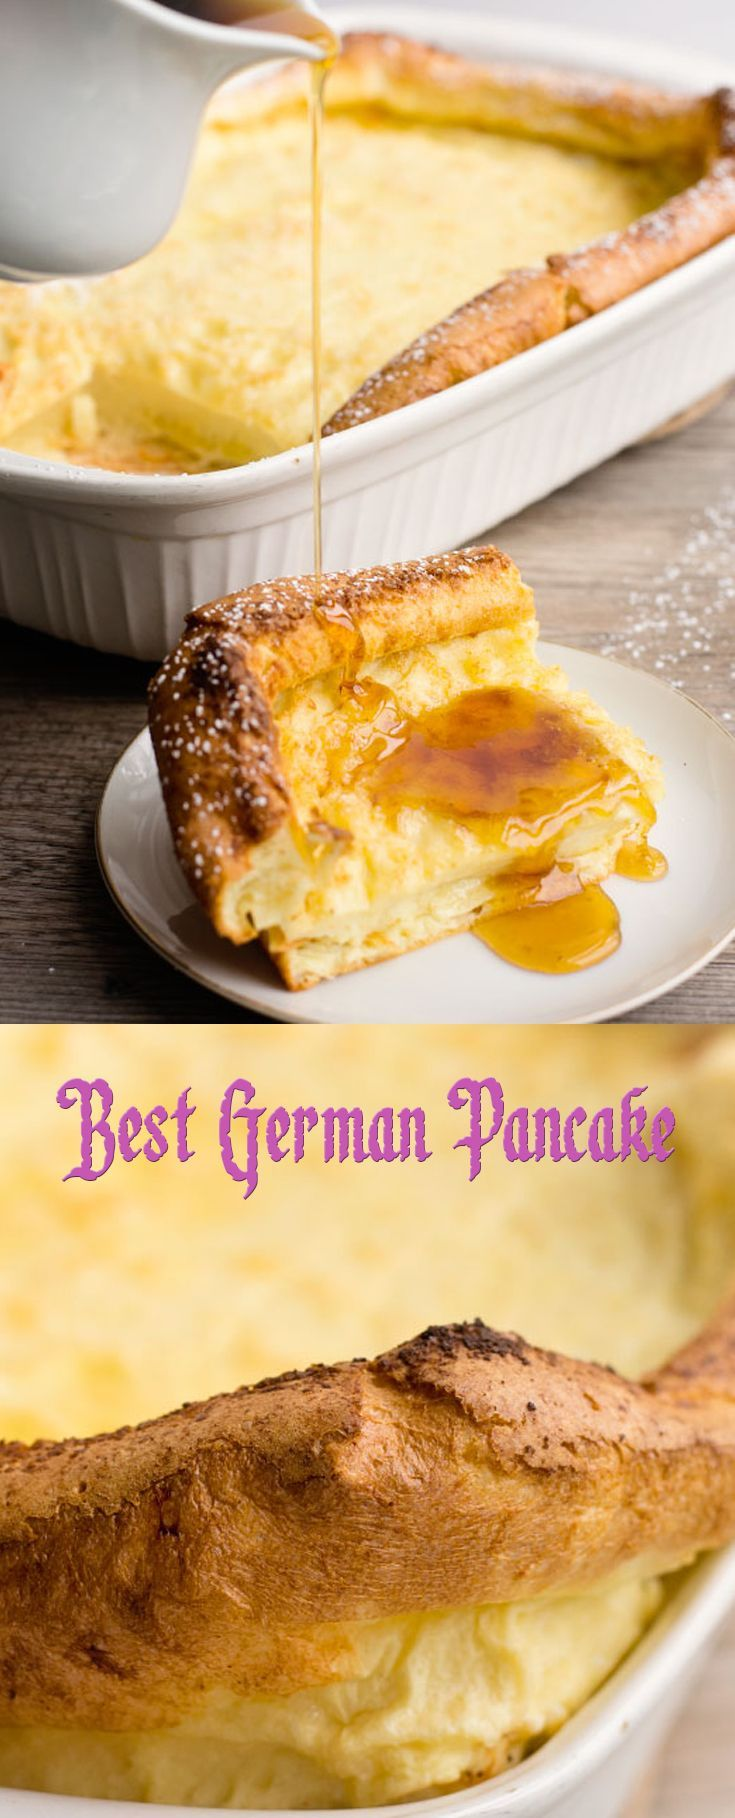 Best 25 Dutch Colonial Exterior Ideas On Pinterest: 25+ Best Ideas About German Pancakes On Pinterest